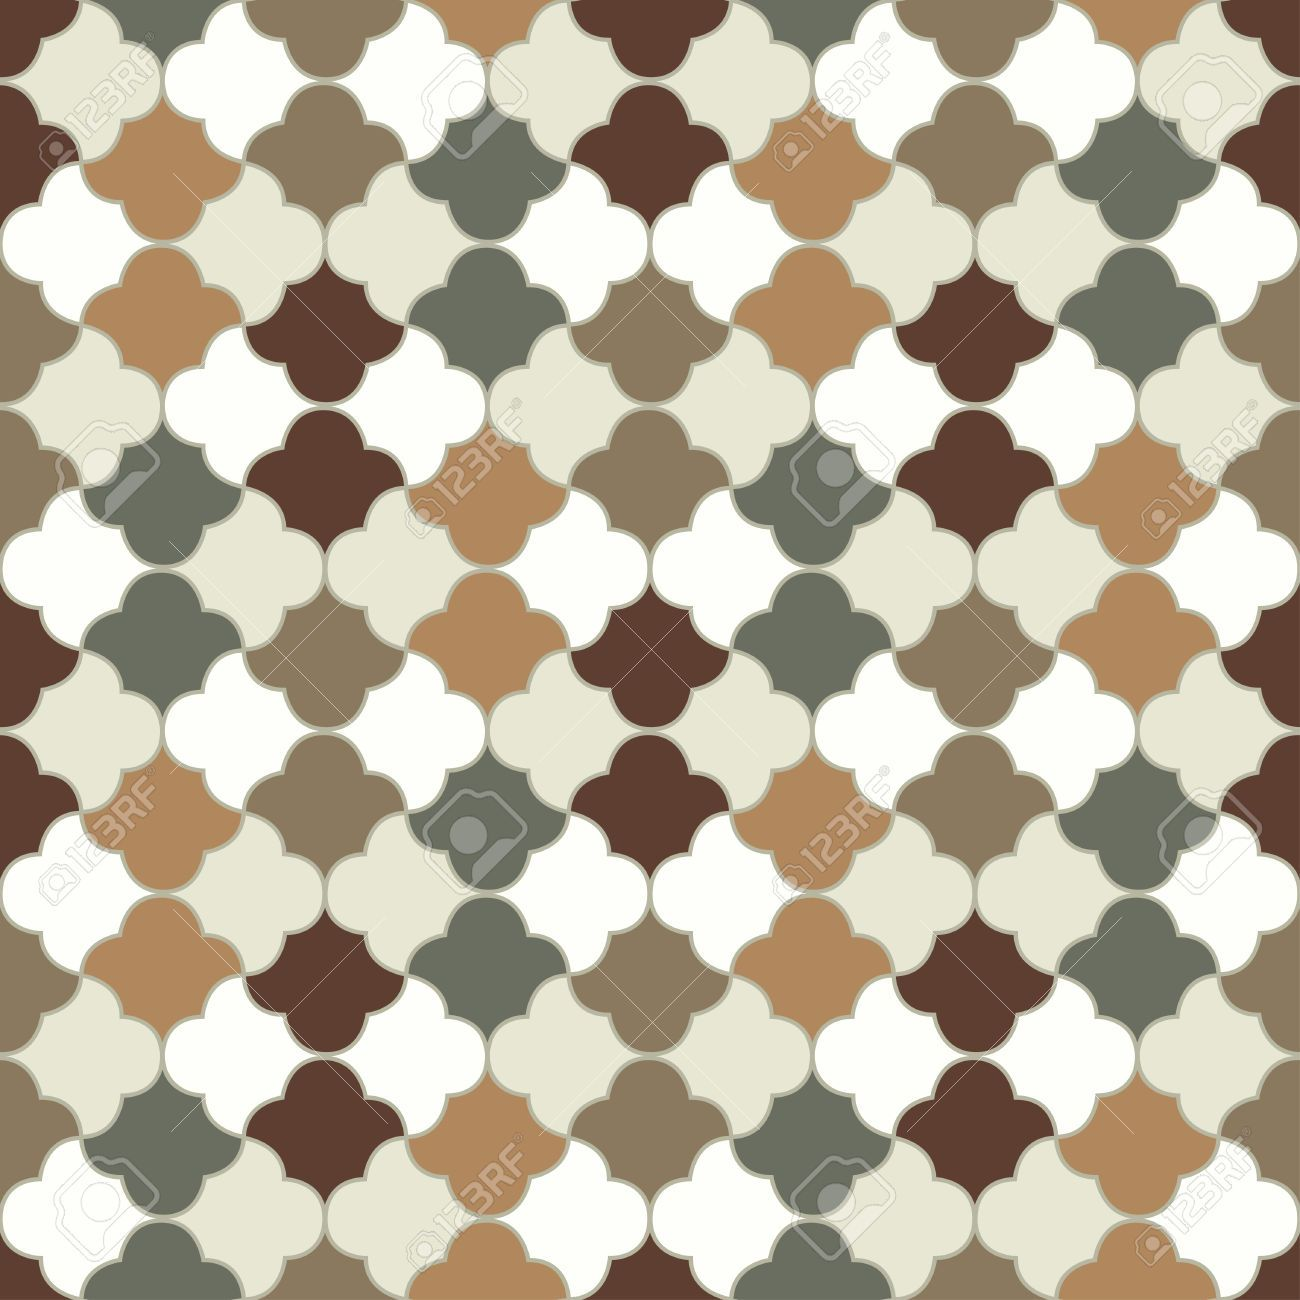 Seamless Ic Tiles Pattern Royalty Free Cliparts Vectors And Stock Ilration Image 24748486